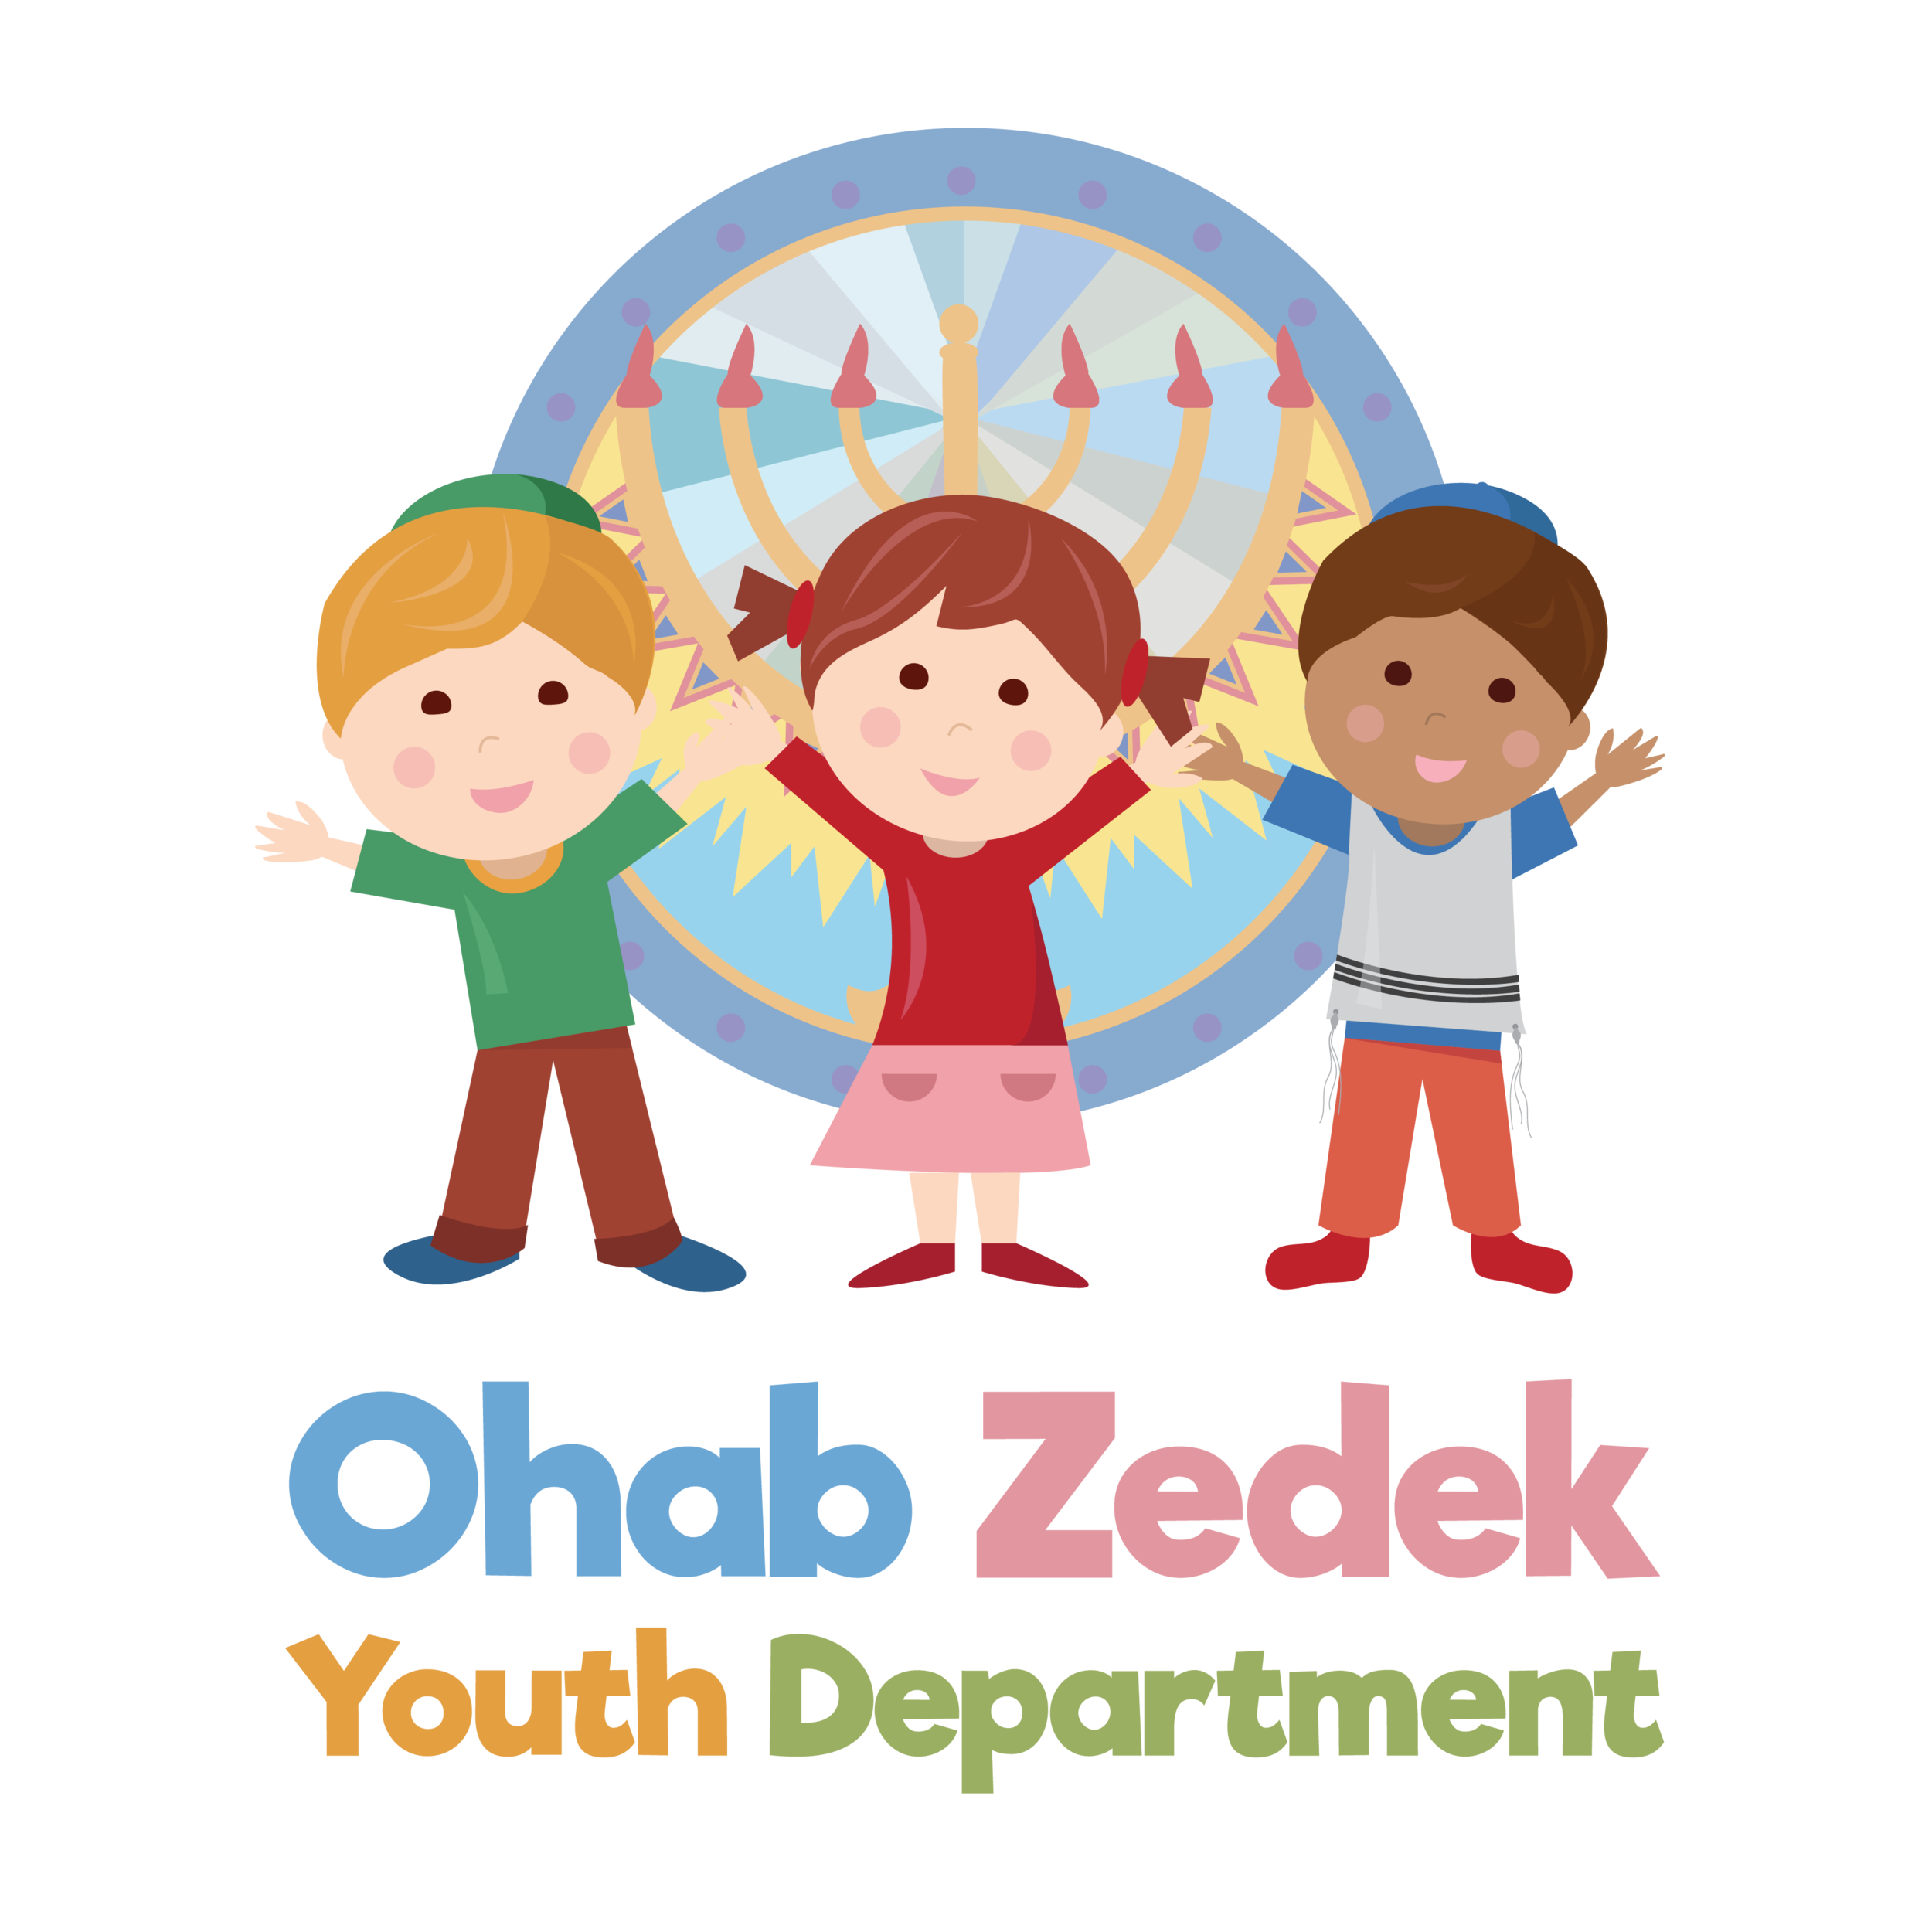 OHAB ZEDEK YOUTH DEPARTMENT LOGO